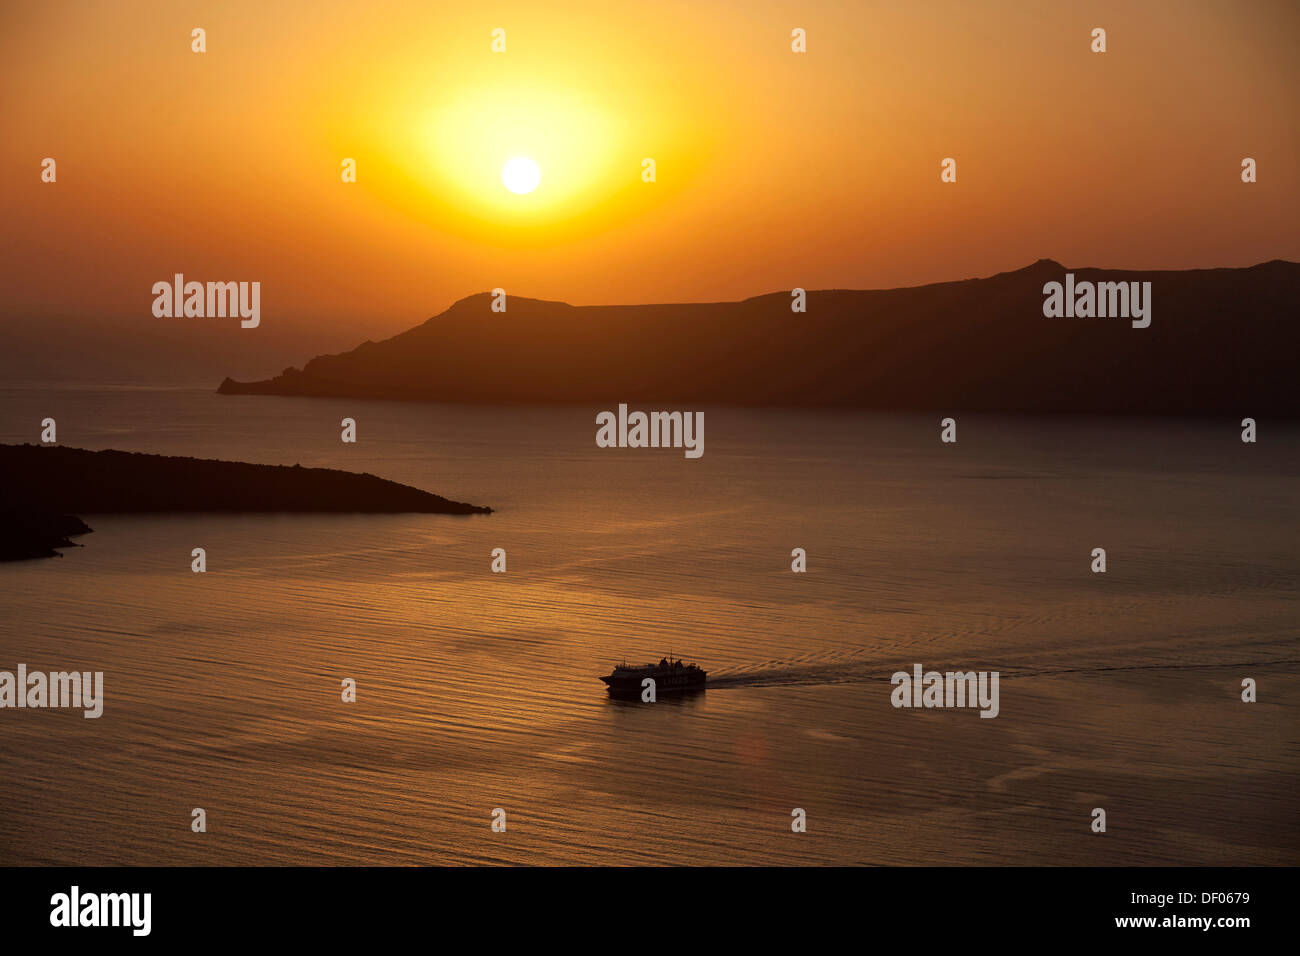 Ferry at sunset, Oía, Santorin, griechische Inseln, Germany - Stock Image